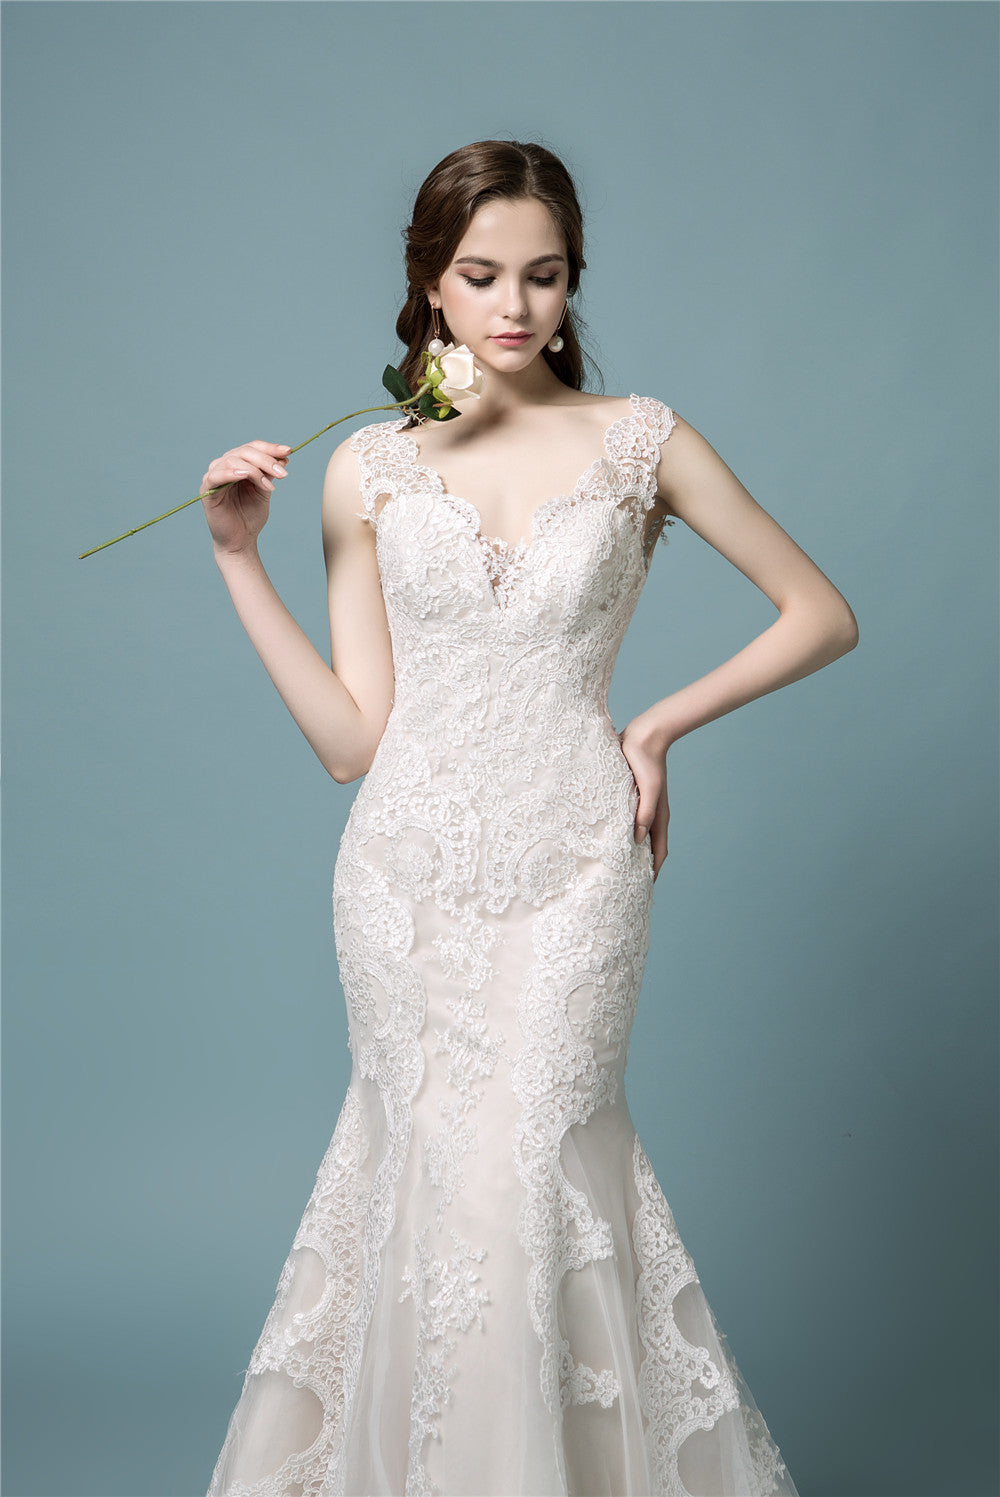 HOT Finds in wedding dresses for you! – Gallery of Addictions